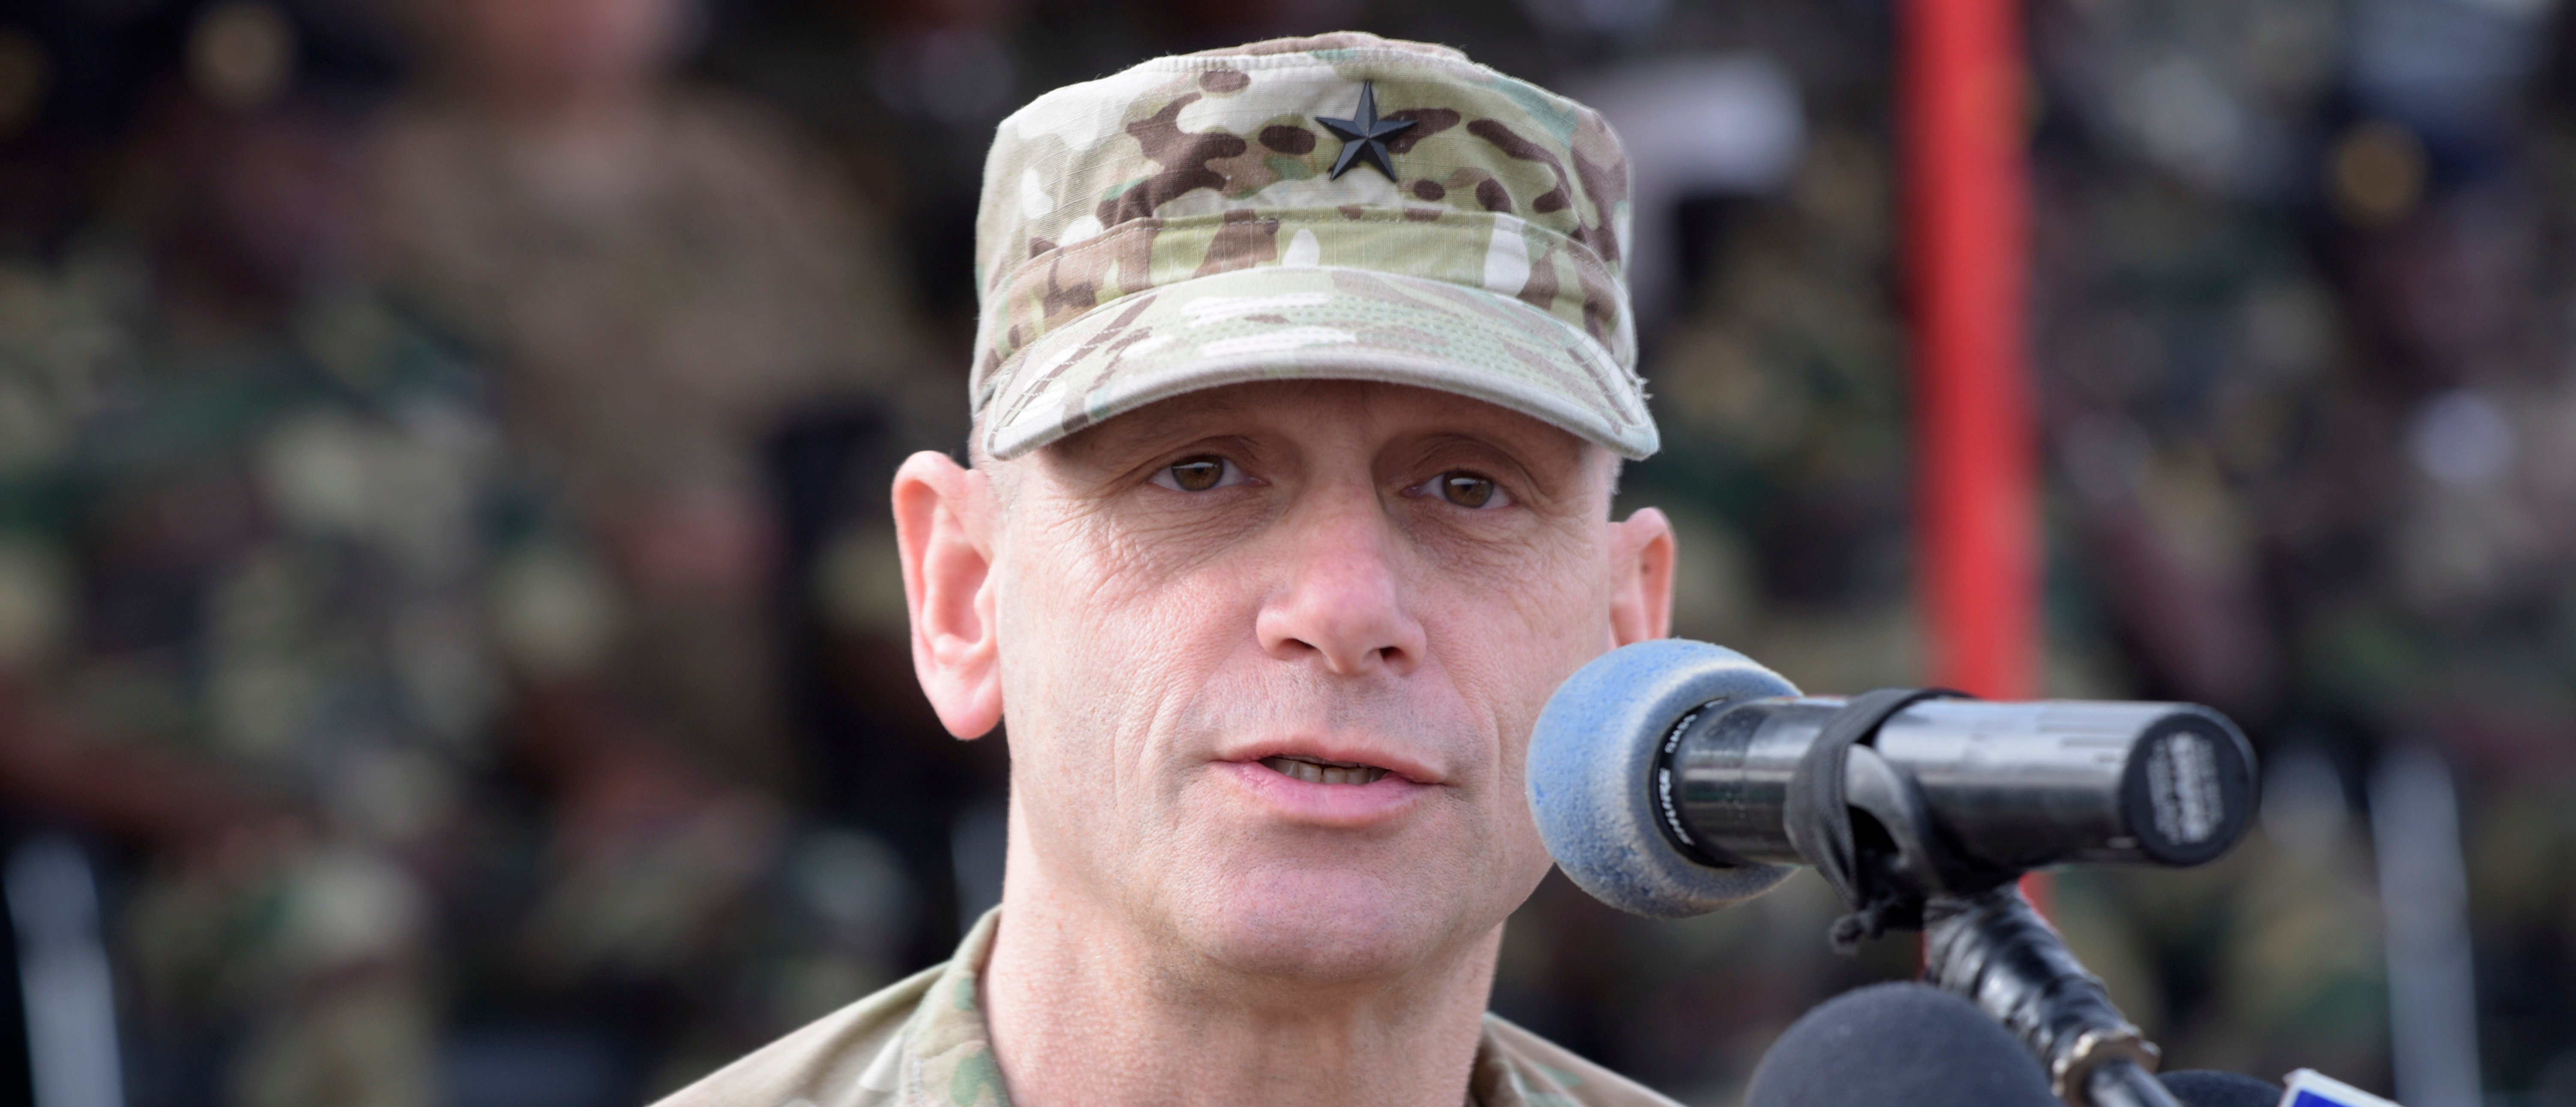 US Brigadier General Donald C. Bolduc, who served as the Deputy Director for Operations, United States Africa Command, speaks on February 8, 2016 (SEYLLOU/AFP/Getty Images)